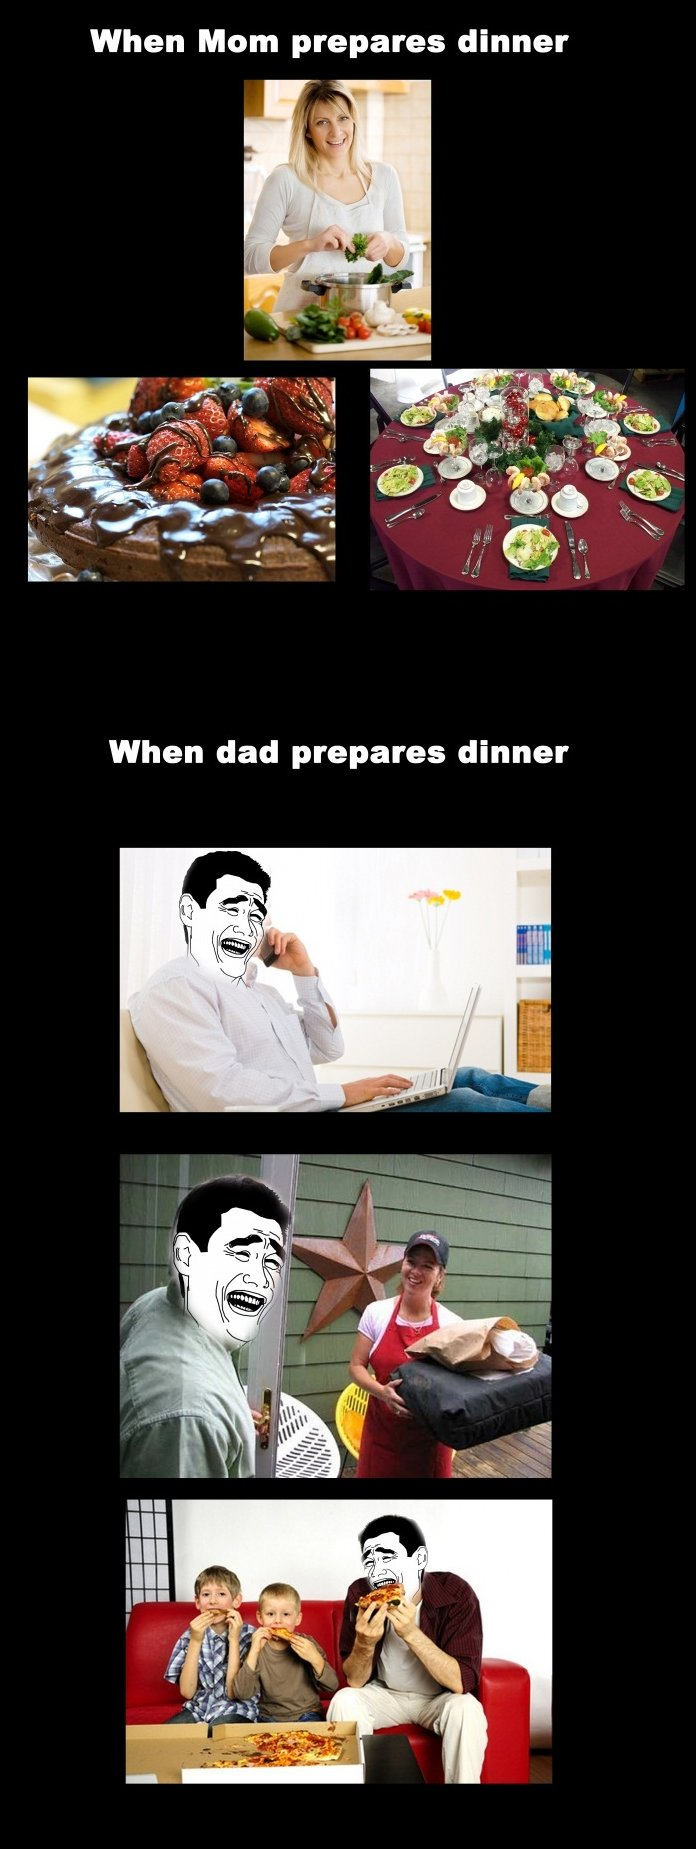 Preparing Dinner – Mom vs. Dad